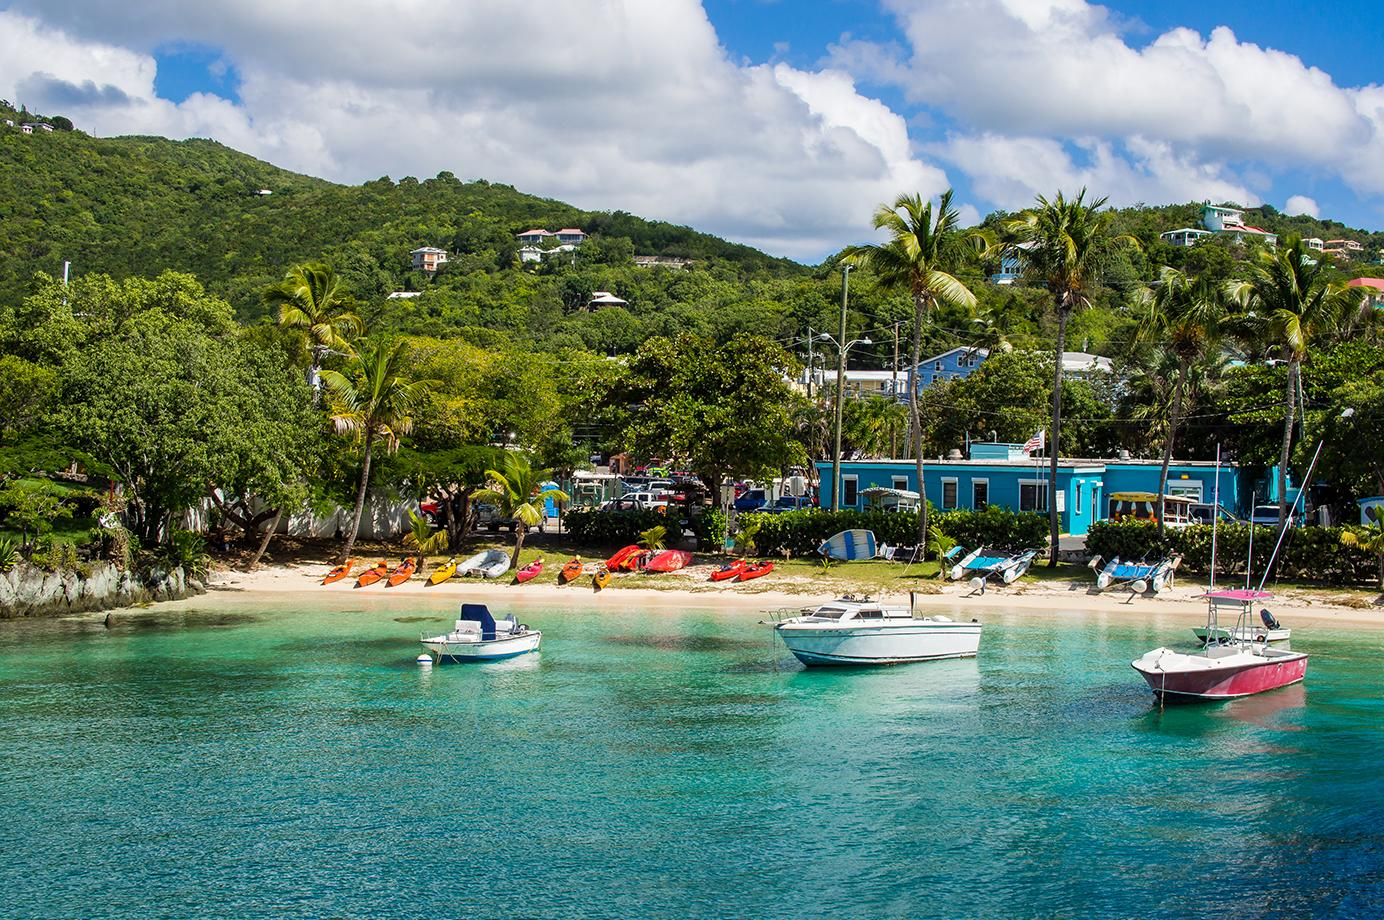 Boats docked at the beach in St. John, US Virgin Islands